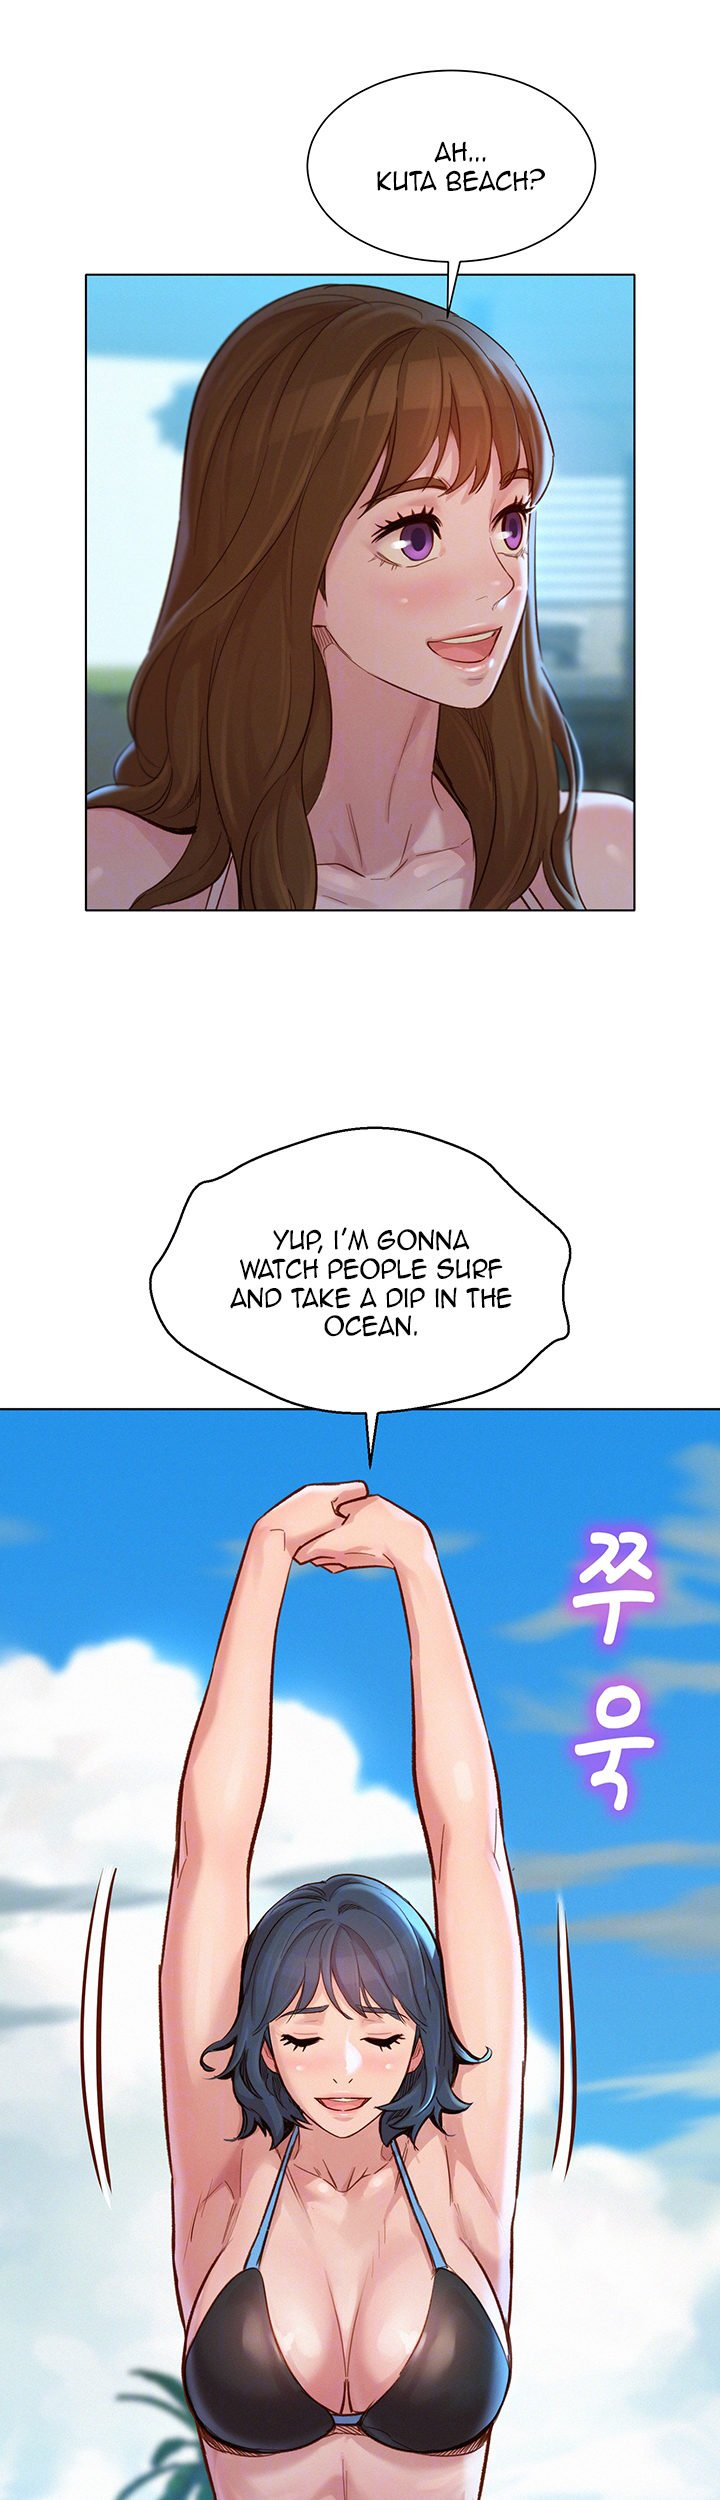 What Do You Take Me For? - chapter 128 - #2